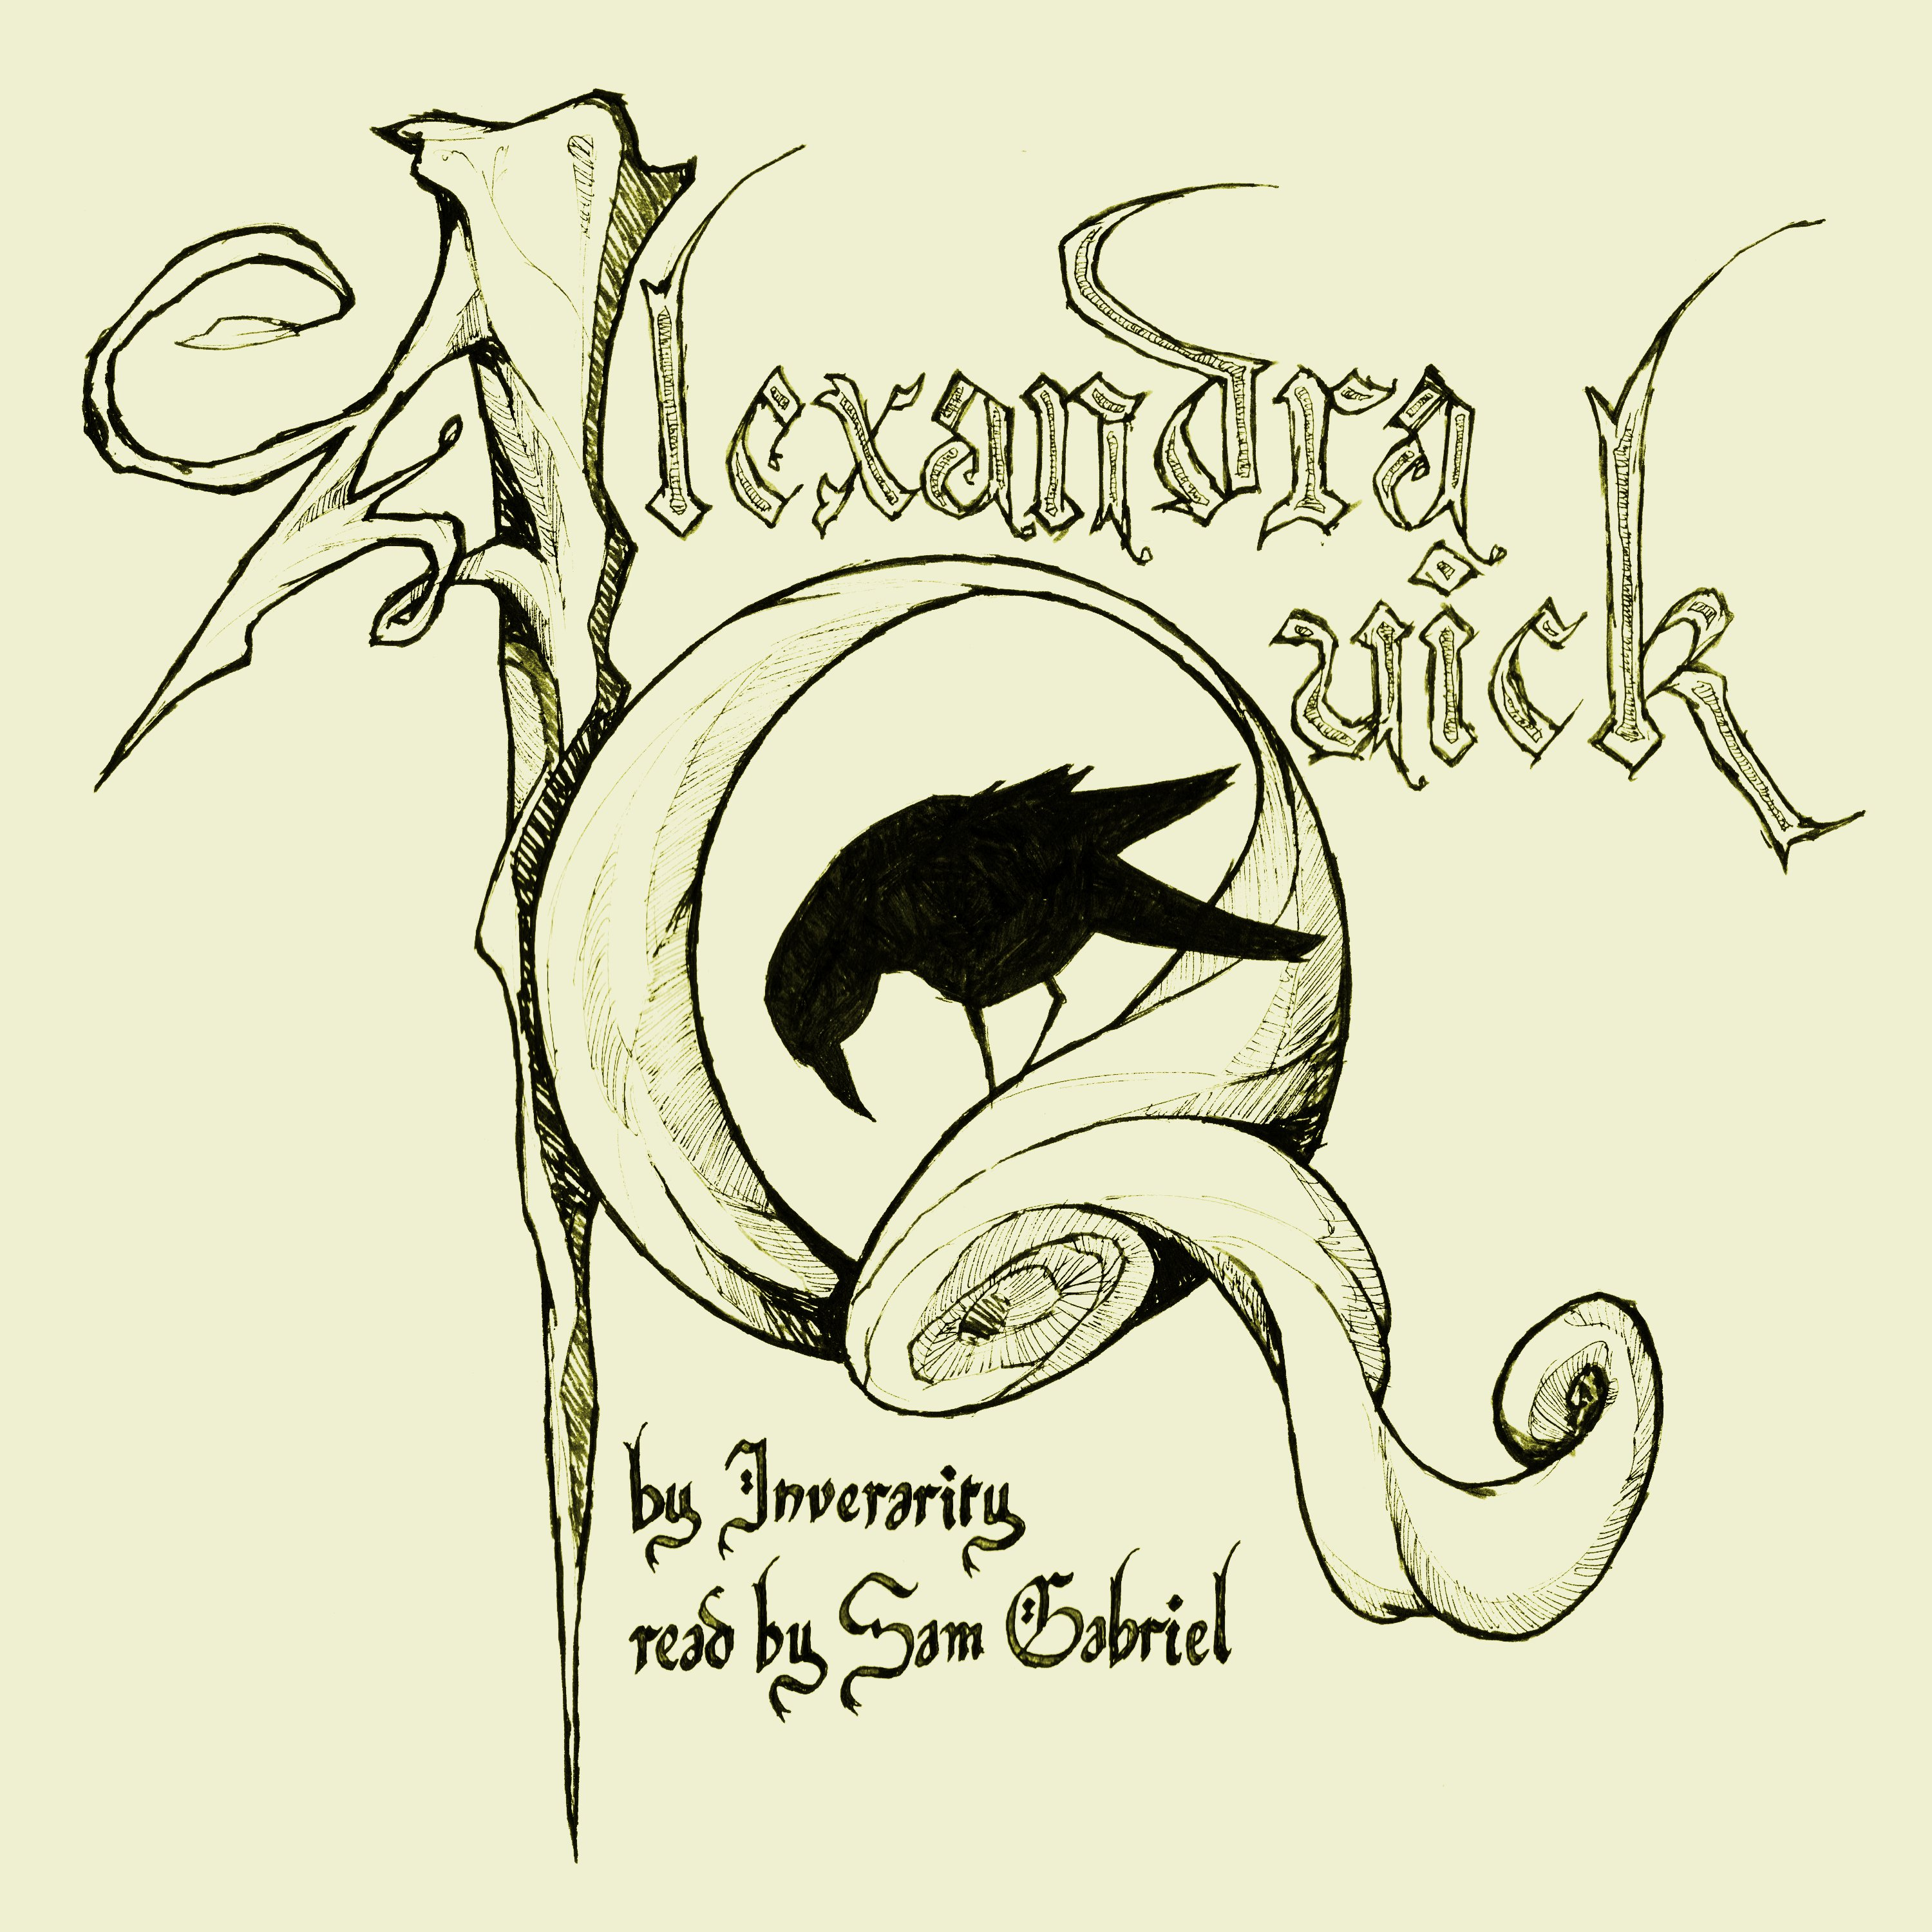 Alexandra Quick and the Audiobook Project